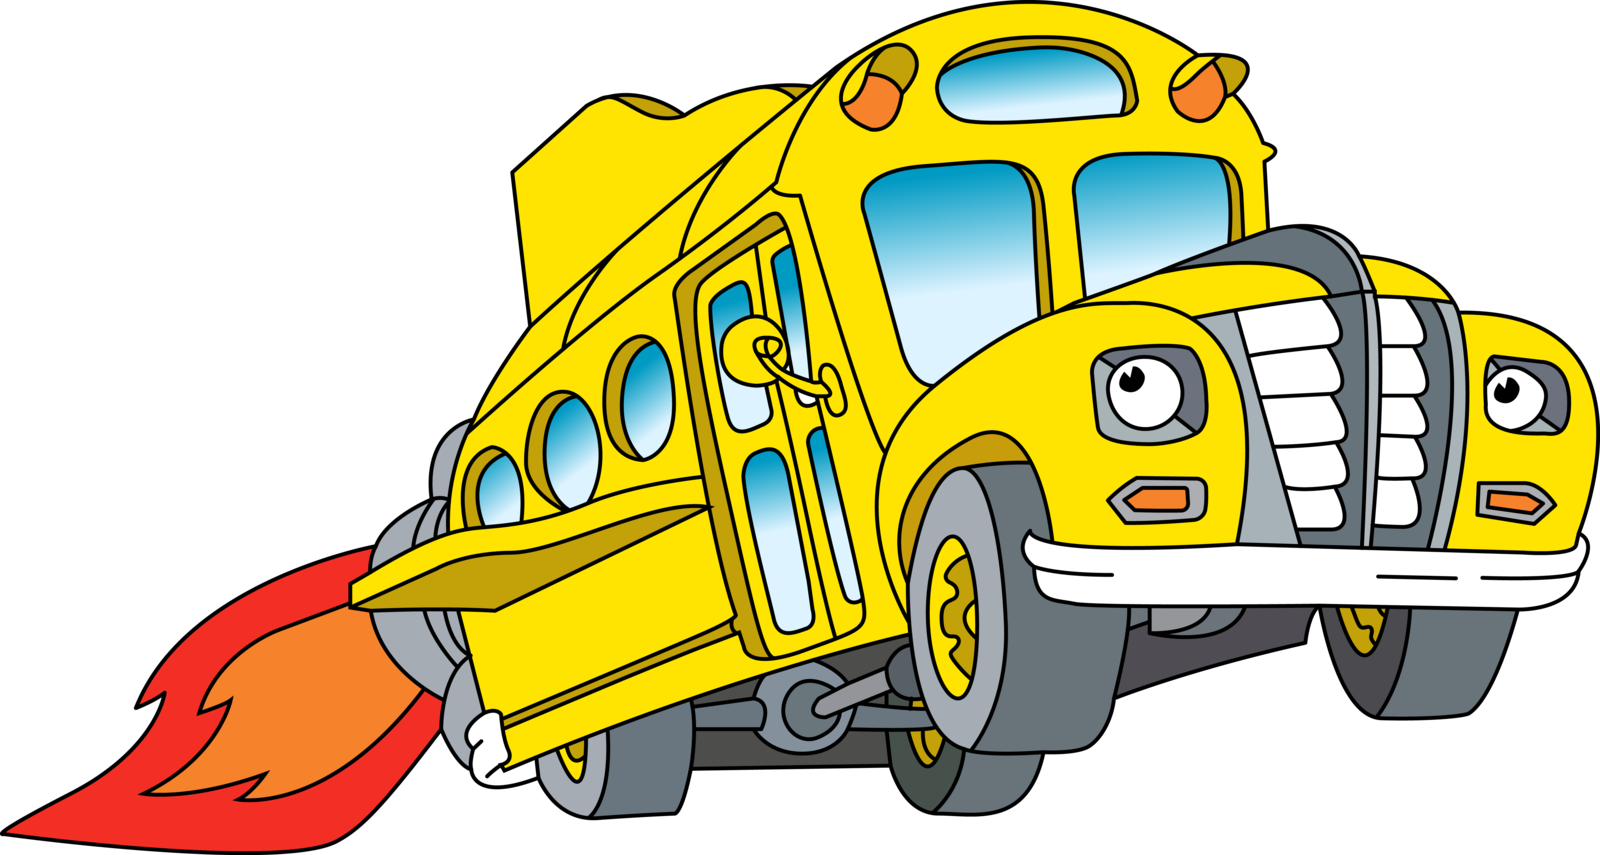 School bus front clipart png black and white library Magic School Bus Clipart at GetDrawings.com | Free for personal use ... png black and white library